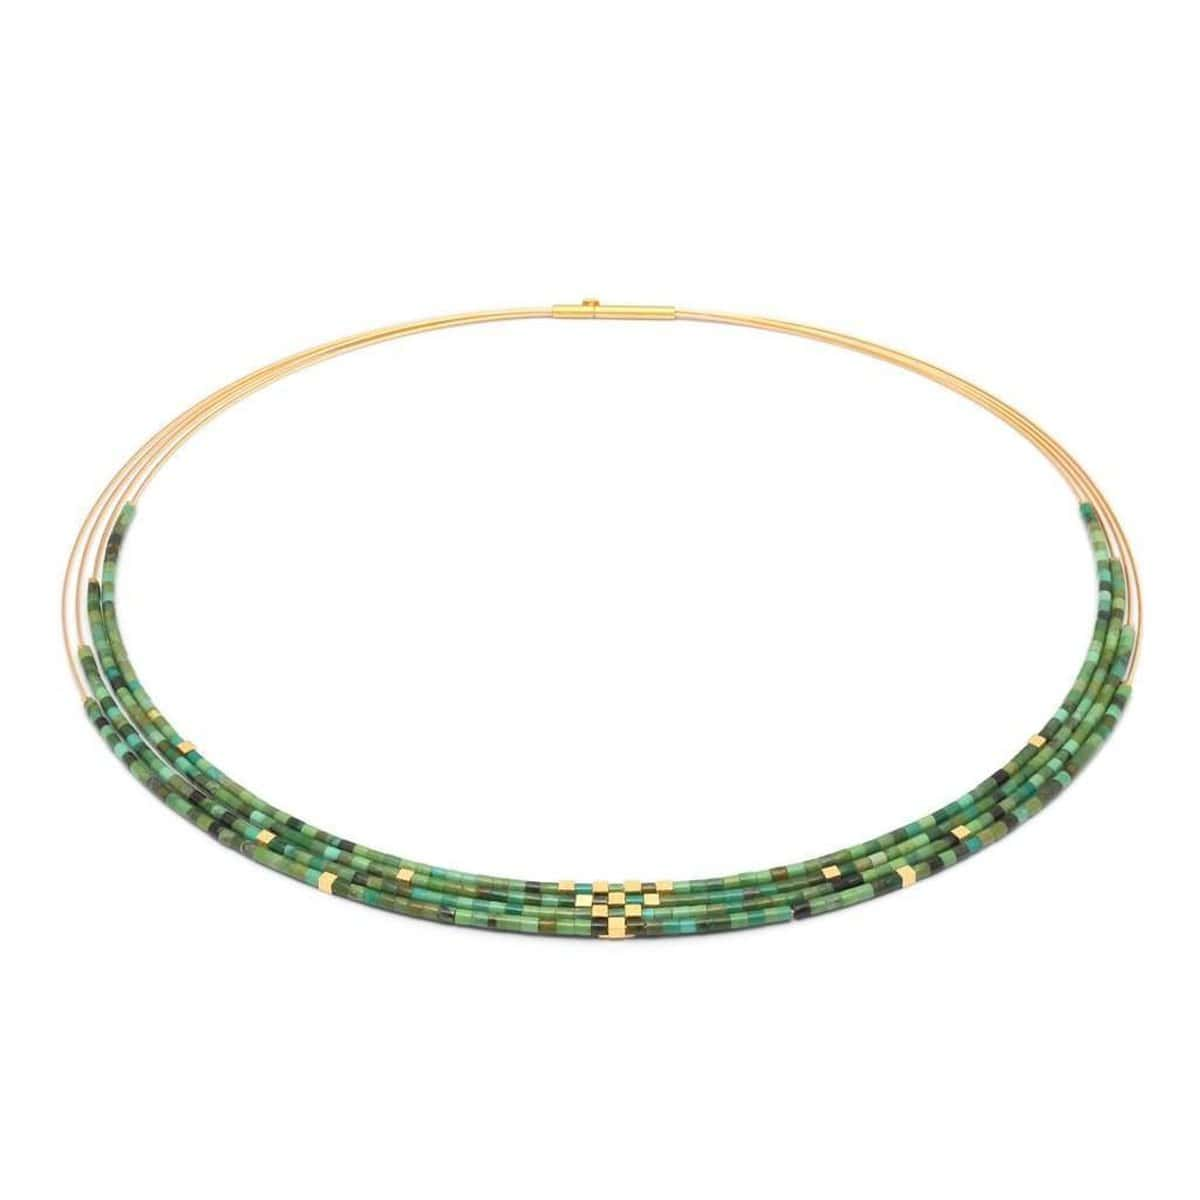 Cuva Green Turquoise Necklace - 85455356